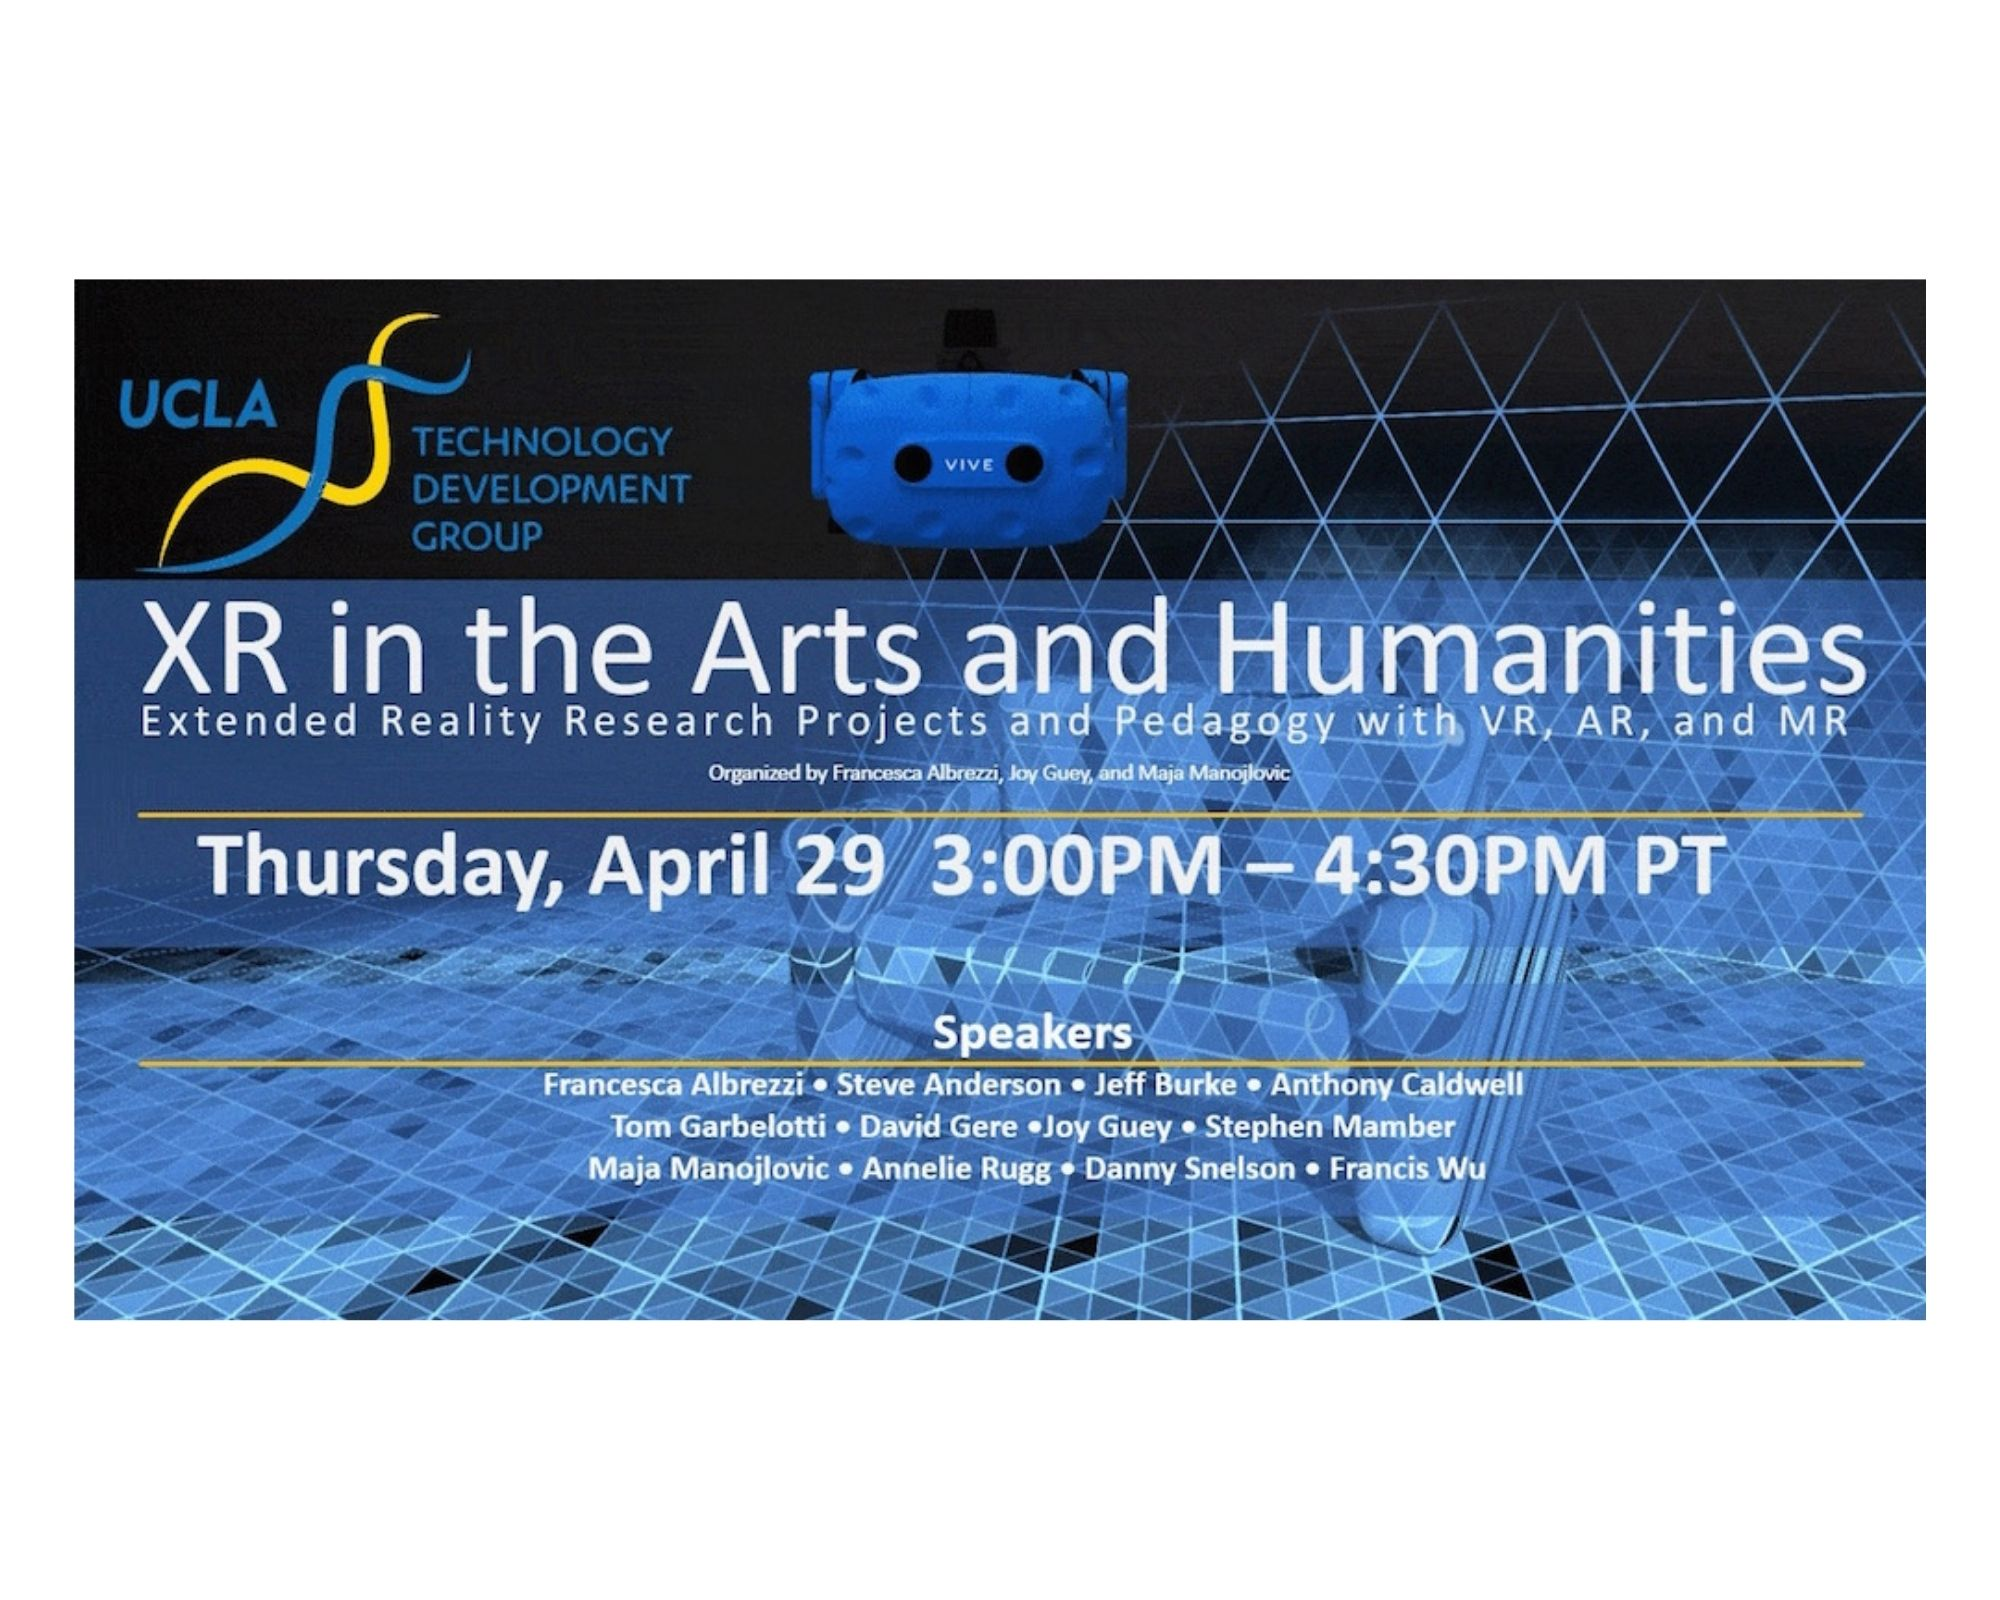 XR IN THE ARTS AND HUMANITIES: Through Positive Eyes at the Fowler Museum